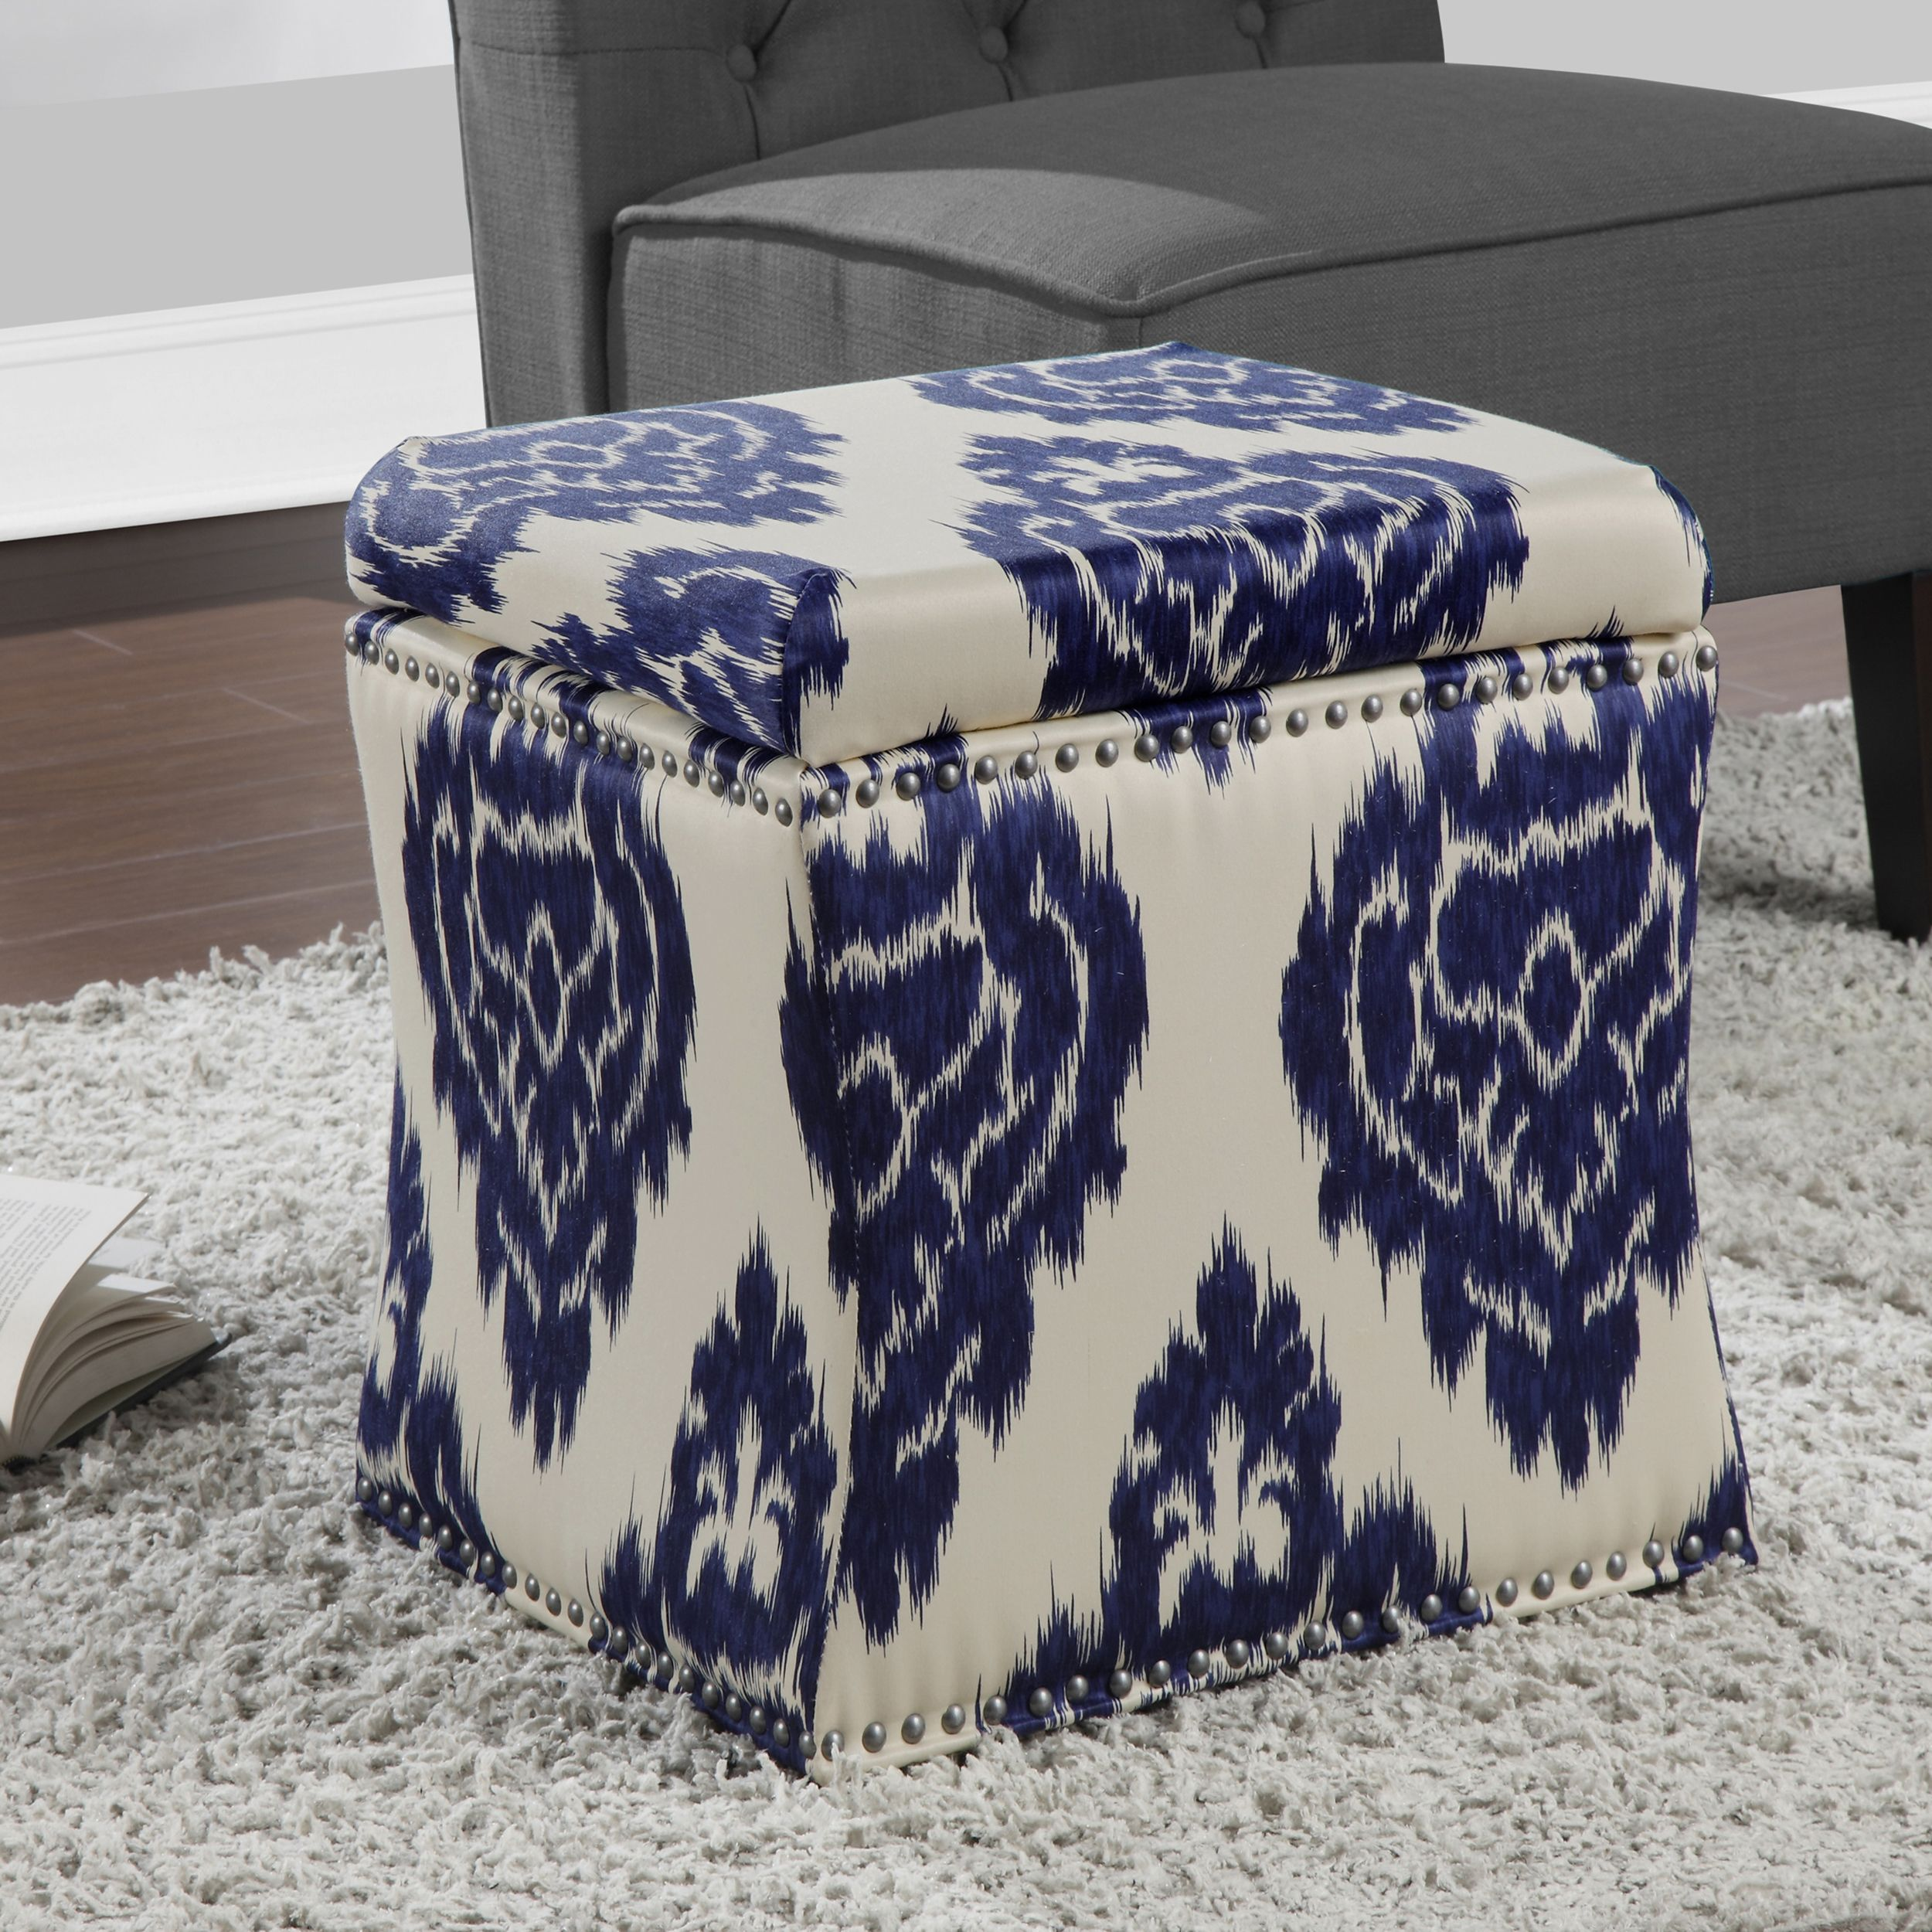 Exceptionnel Curved Indigo Ikat Storage Ottoman   Overstock™ Shopping   Great Deals On  Ottomans